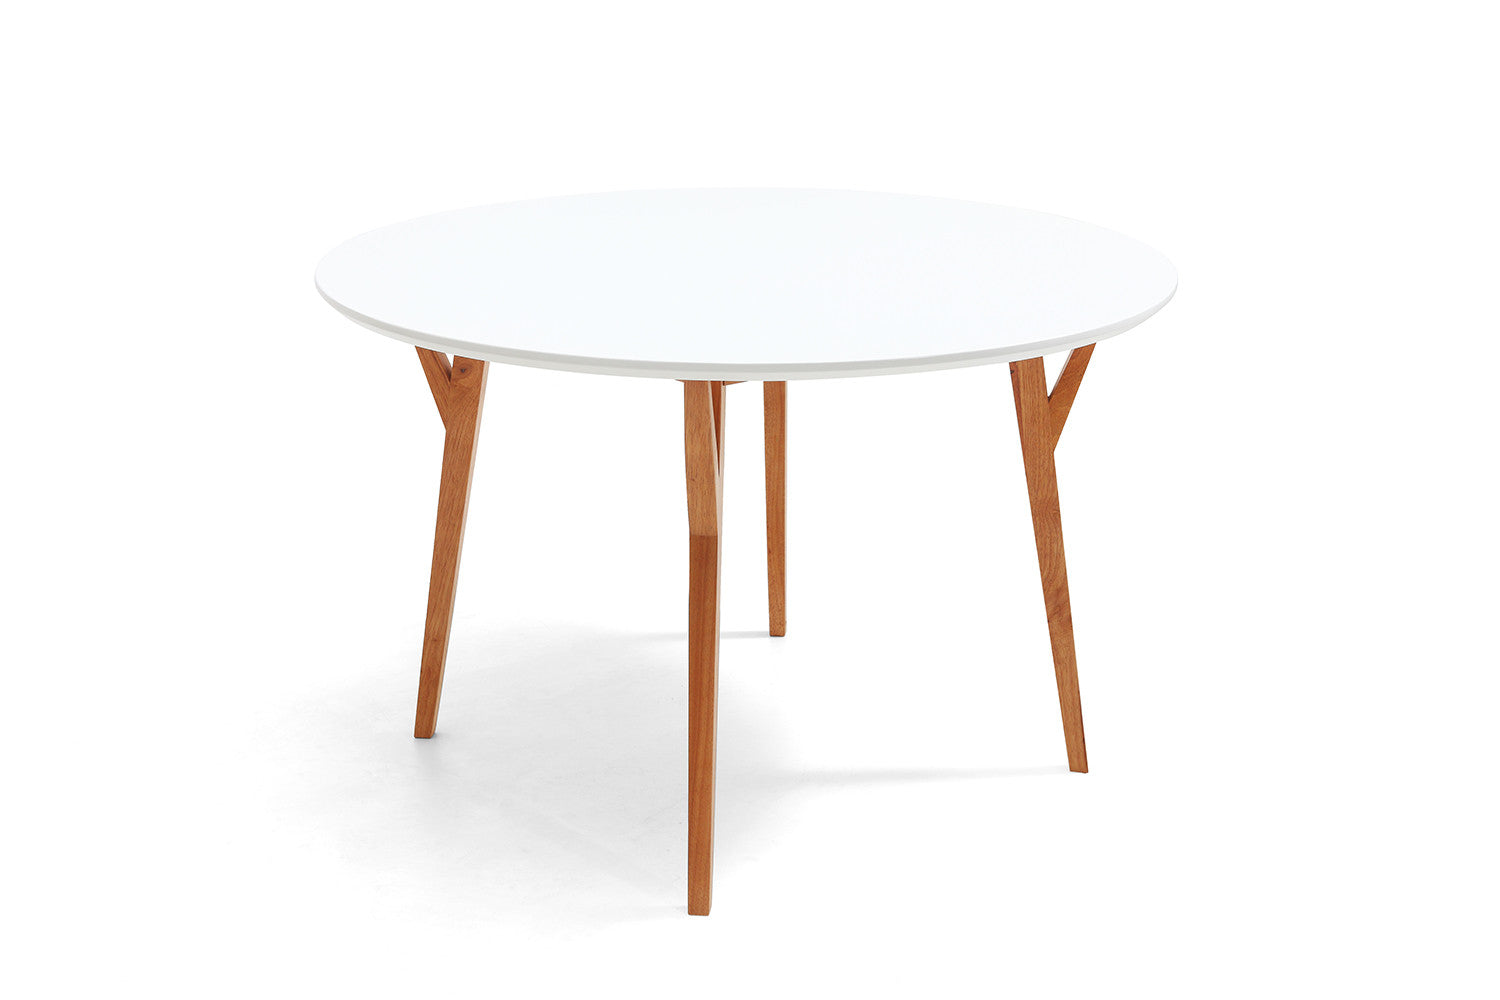 Table de salle manger ronde design scandinave moesa for Table de salle a manger en bois